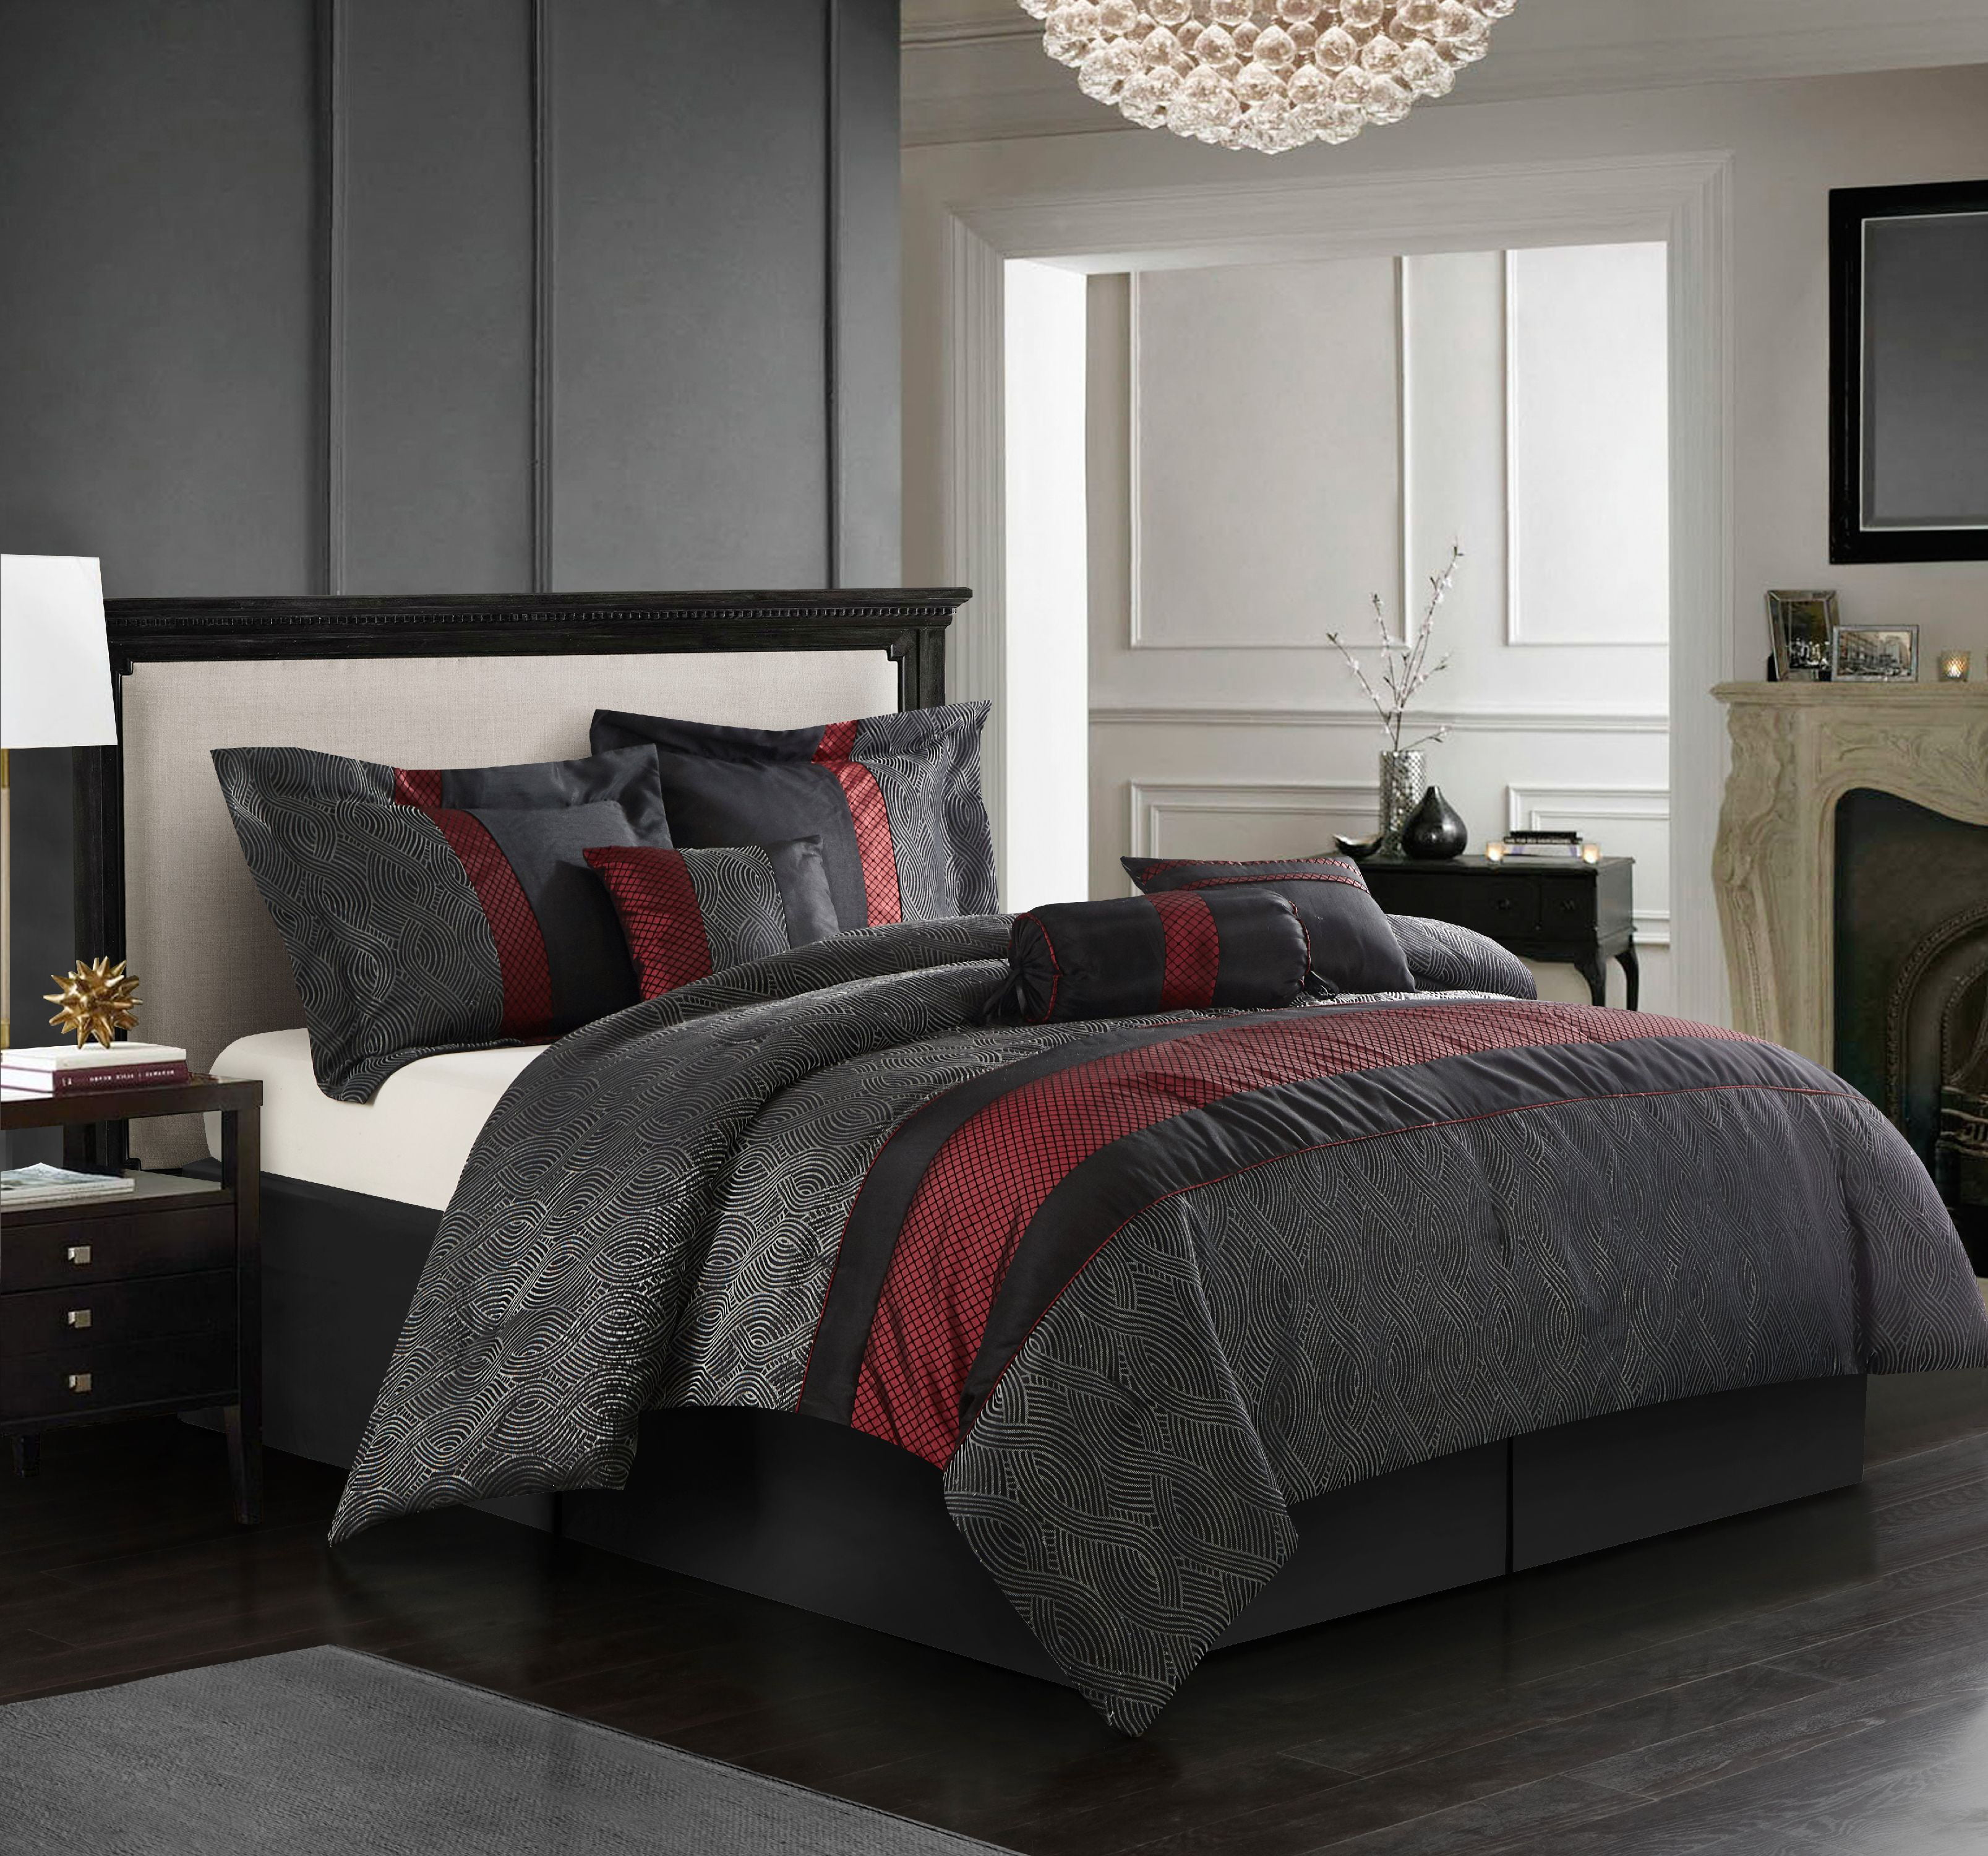 7 Piece Black Feathered Modern-Style Comforter Set and// or Matching Curtain Set